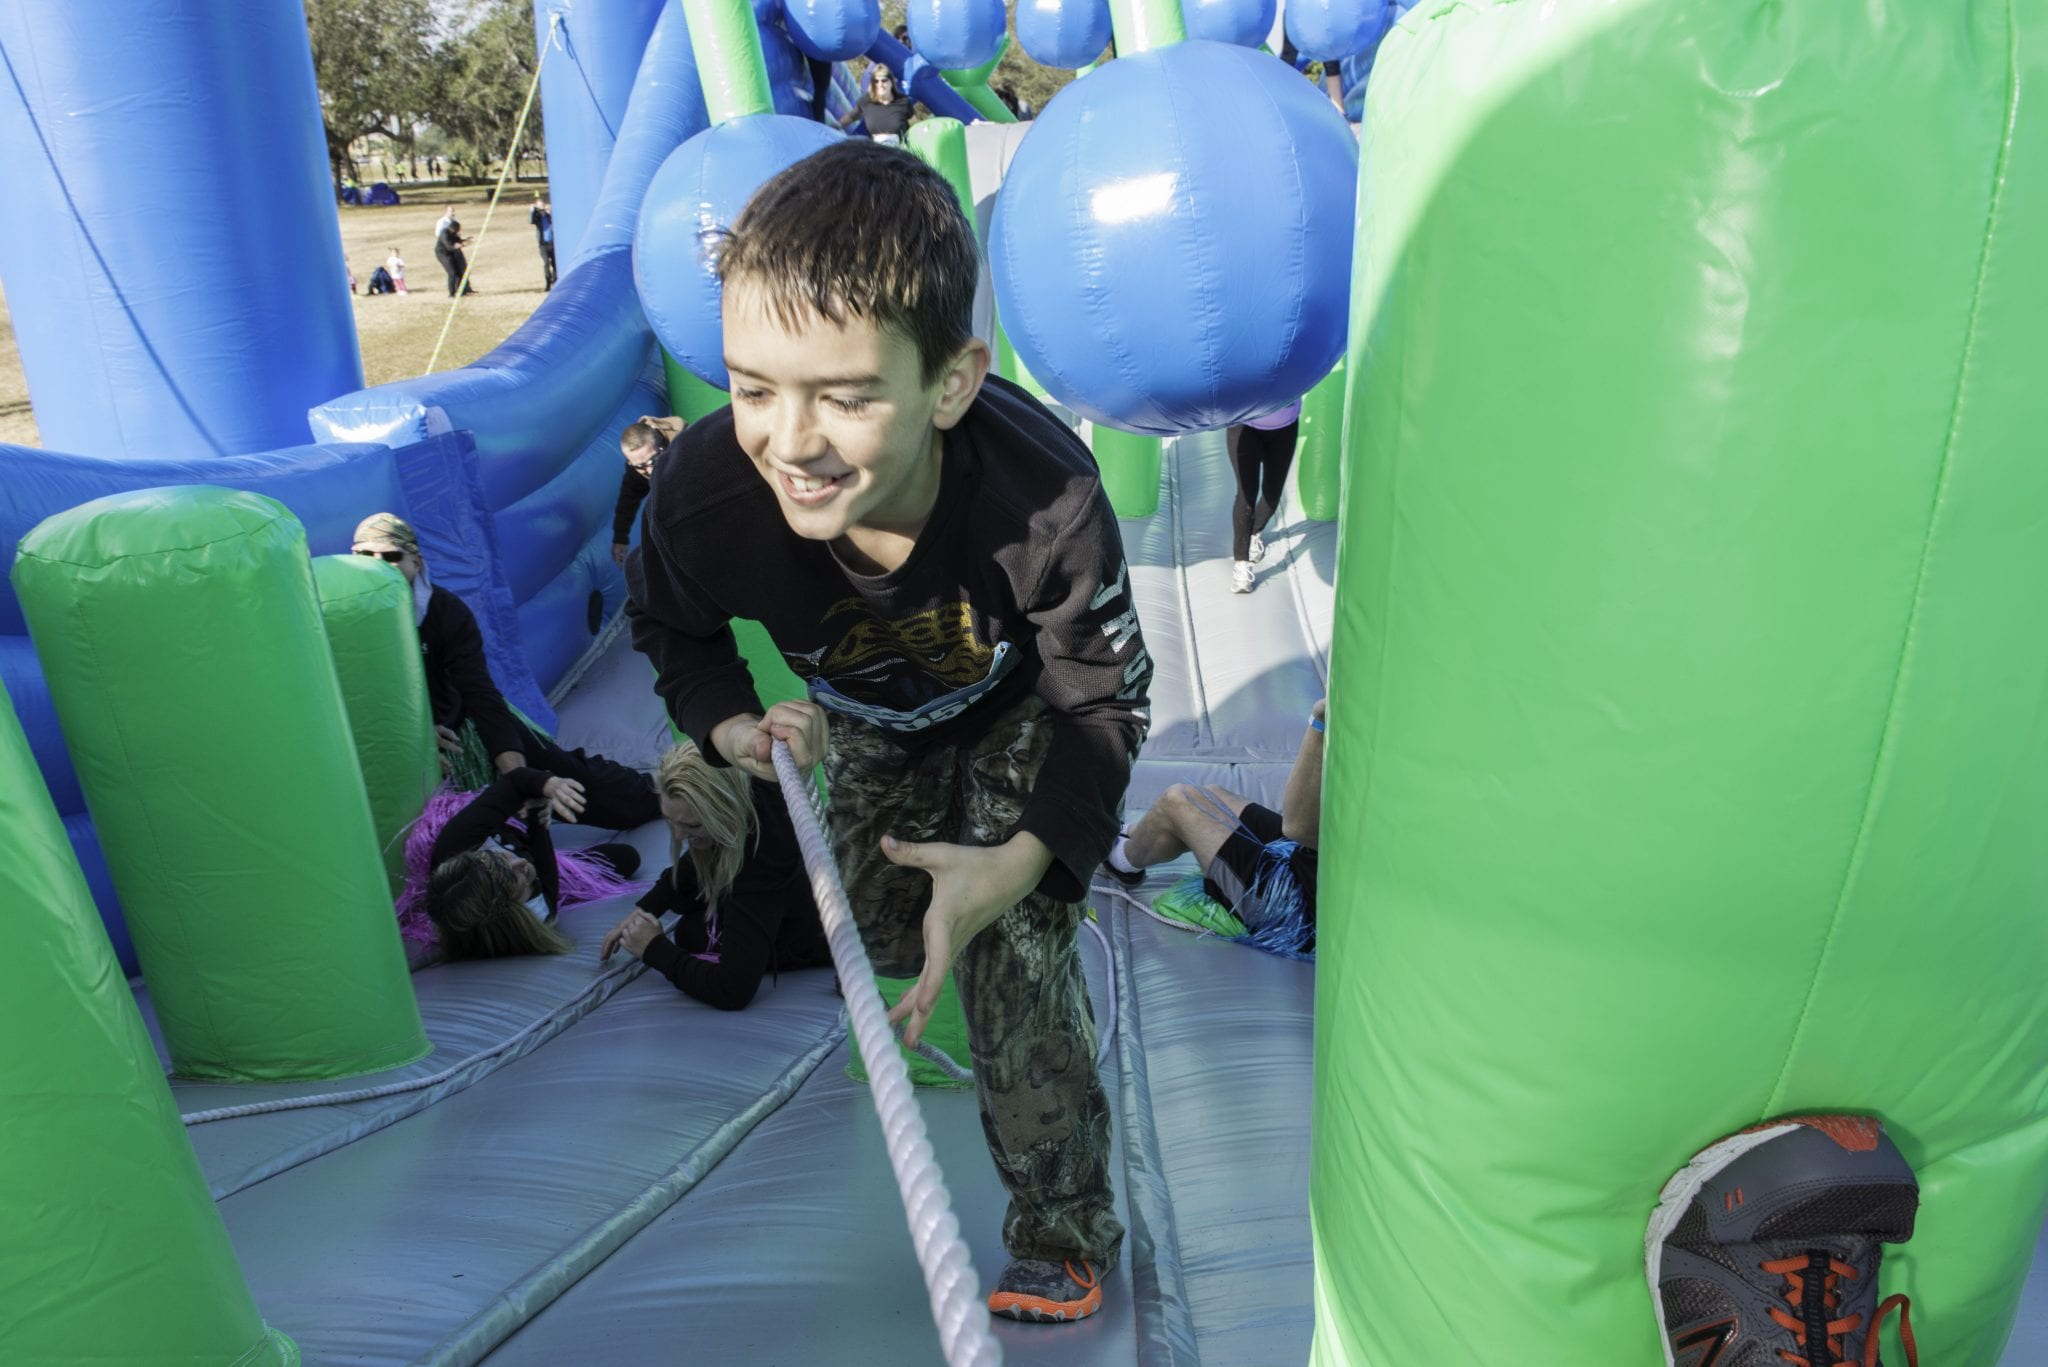 Insane Inflatable 5k Coming To Bossier Nov 12 Bossier